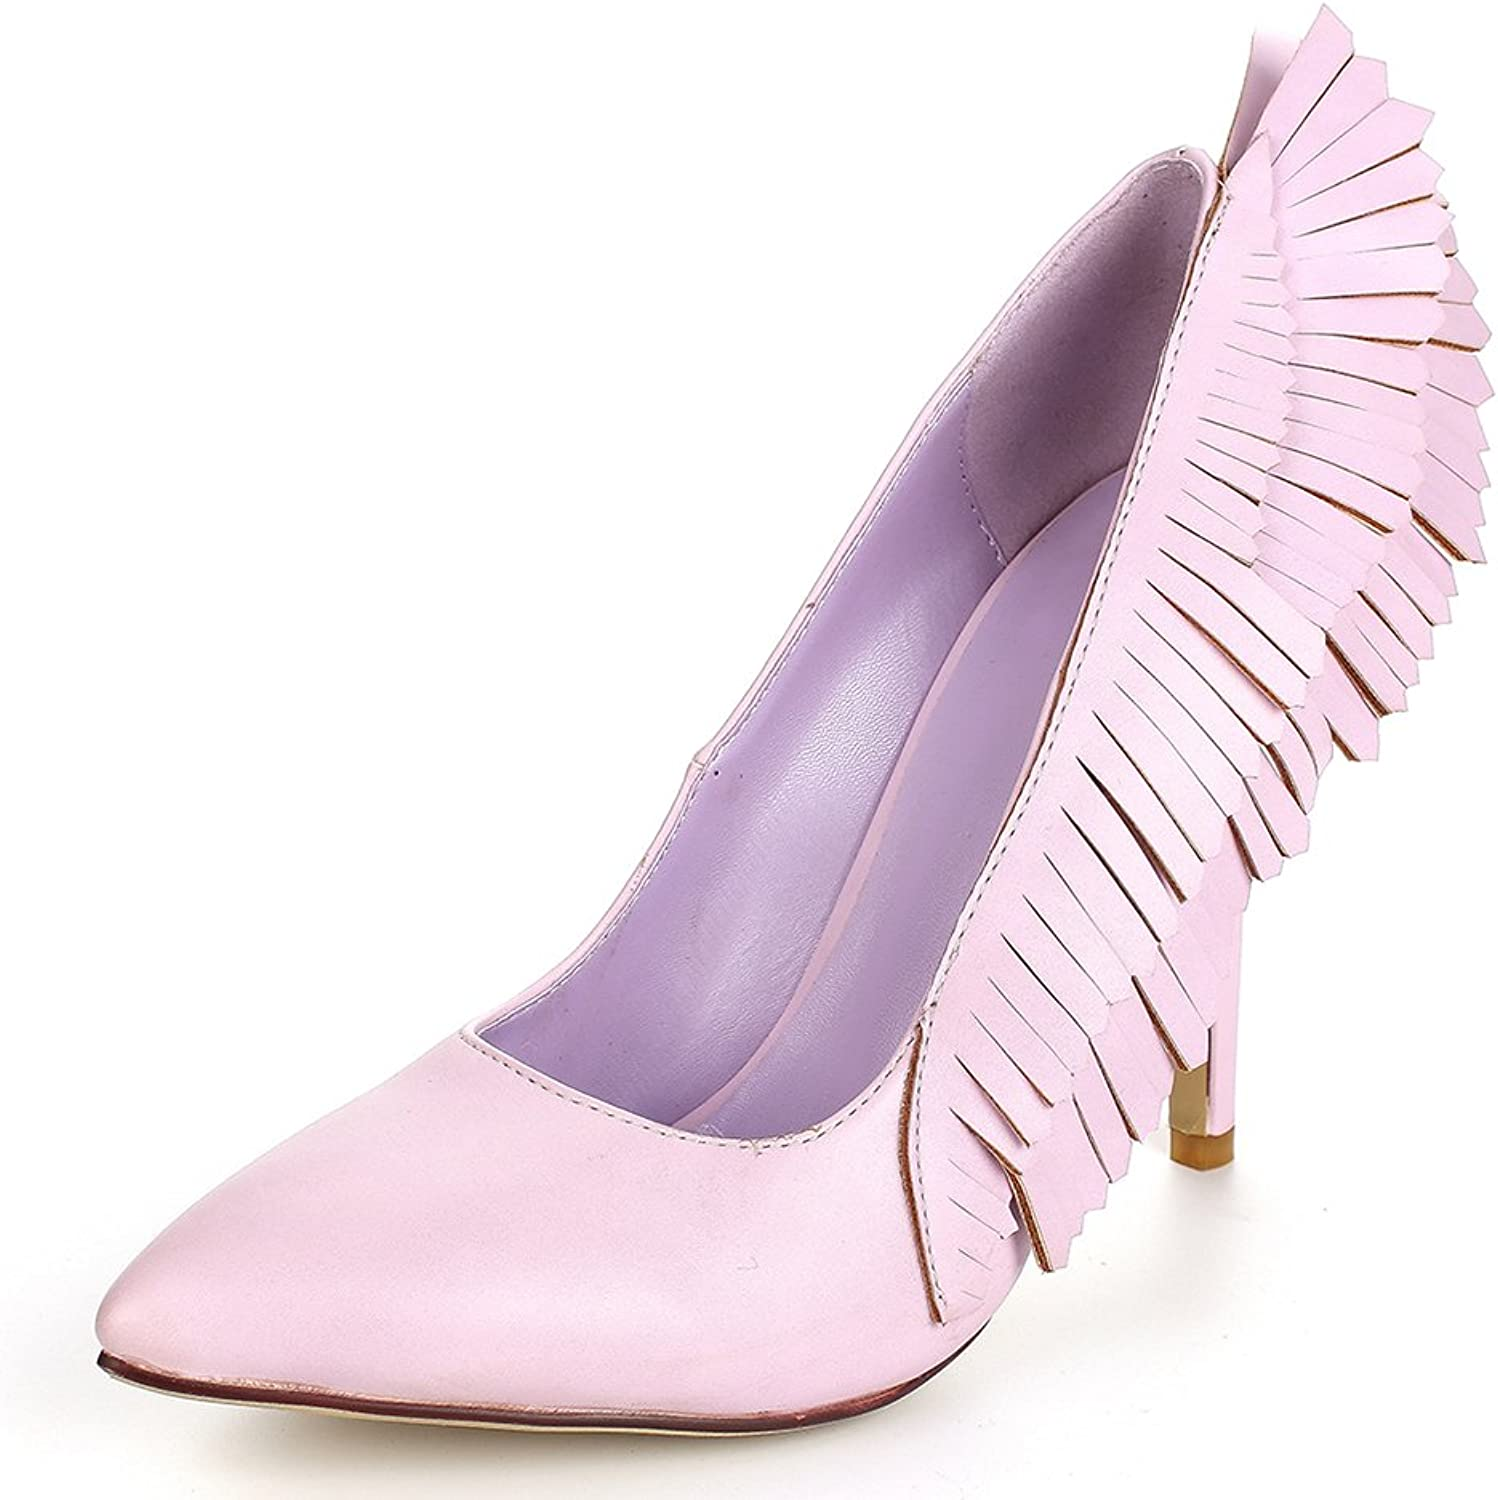 A-BUYBEA Women's Pointed Toe Fashion High Heel Leather Wings Dress Pump shoes